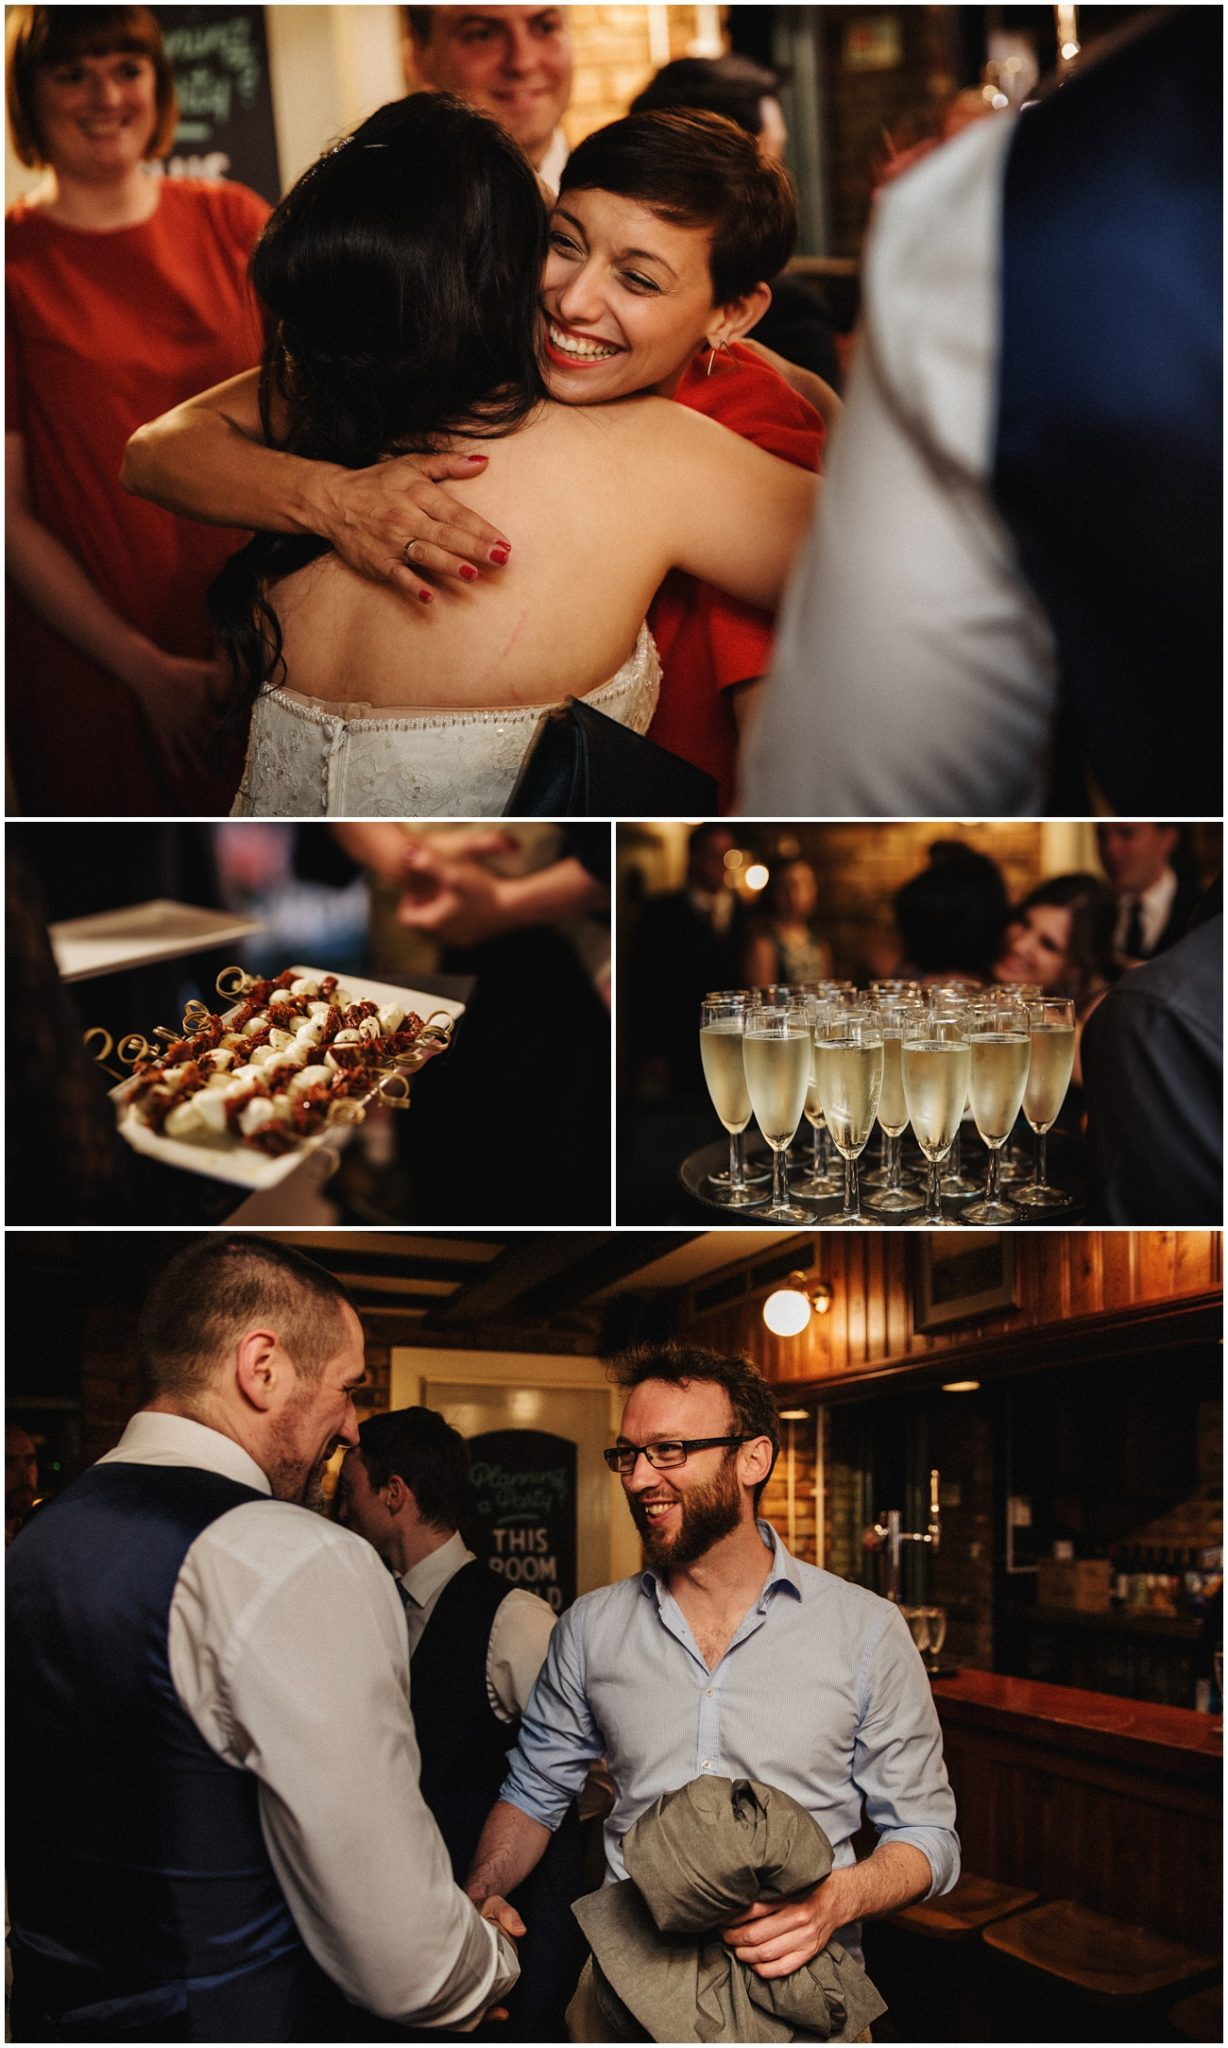 The wedding guests congratulate the bride and groom during drinks and canapes